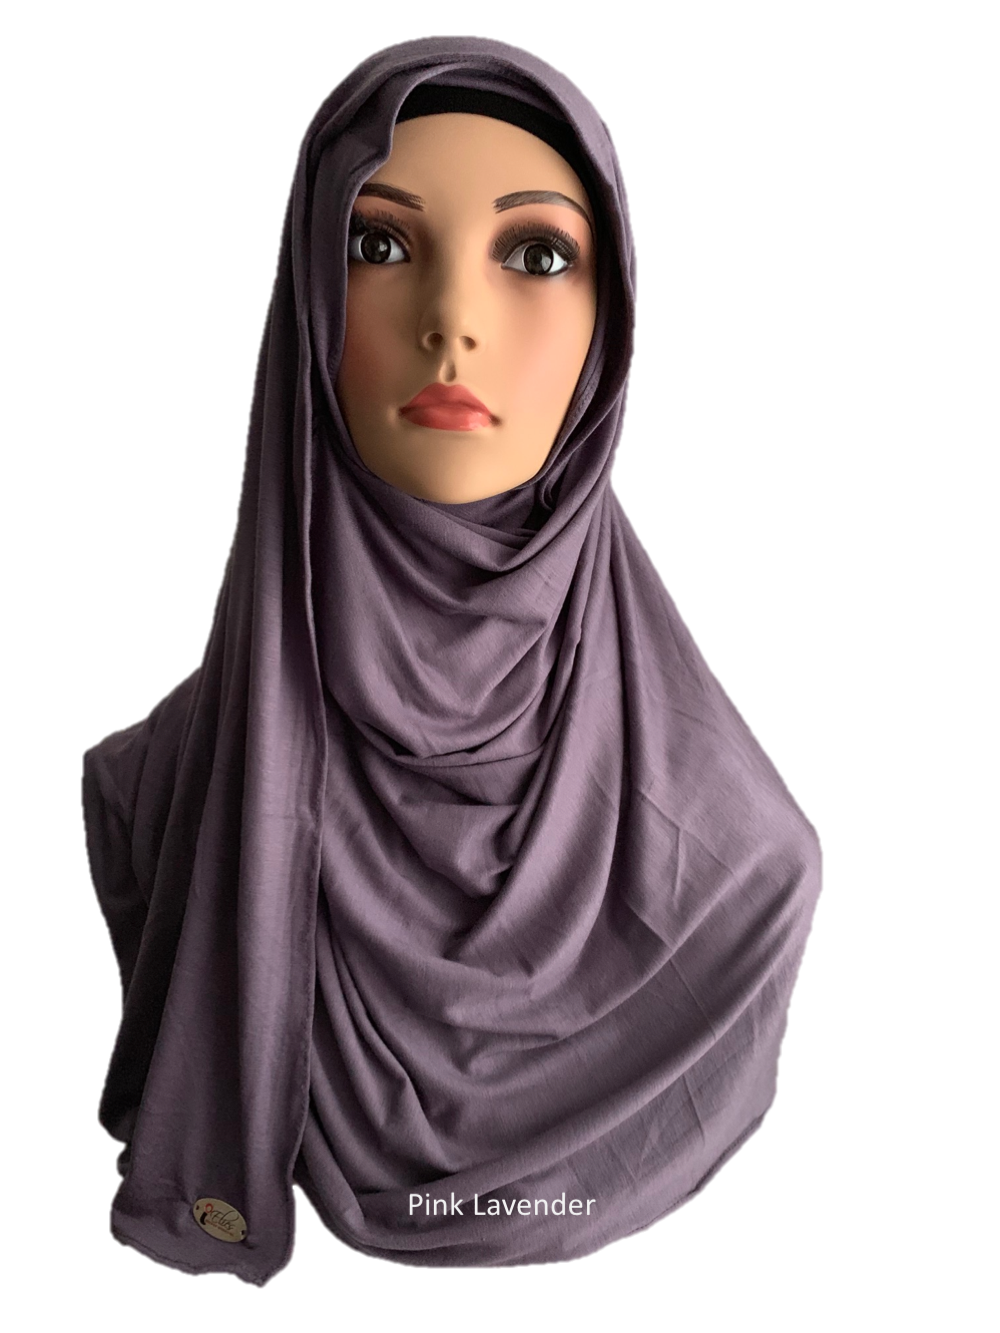 Pink Lavender stretchy (COT) instant hijab SF